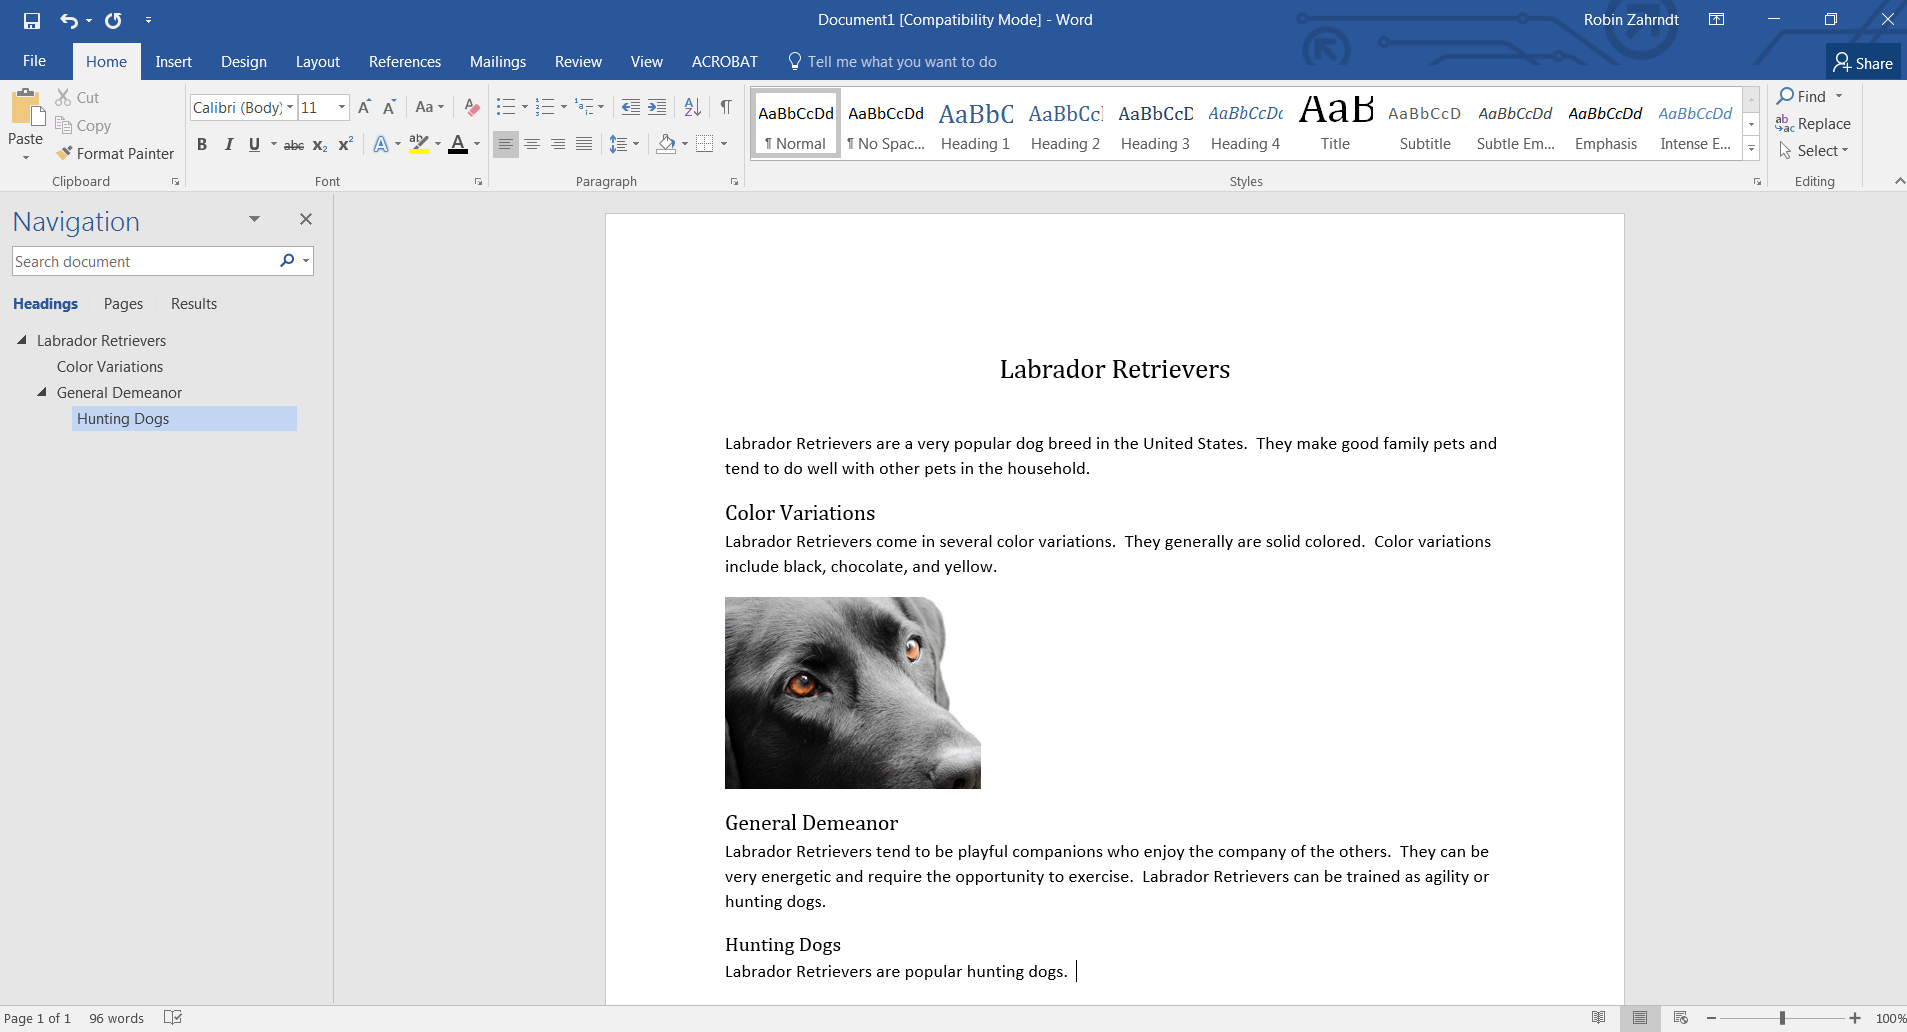 Screenshot of a Microsoft Word document on Labrador Retrievers. The document uses headings in a sequential order to organize content.